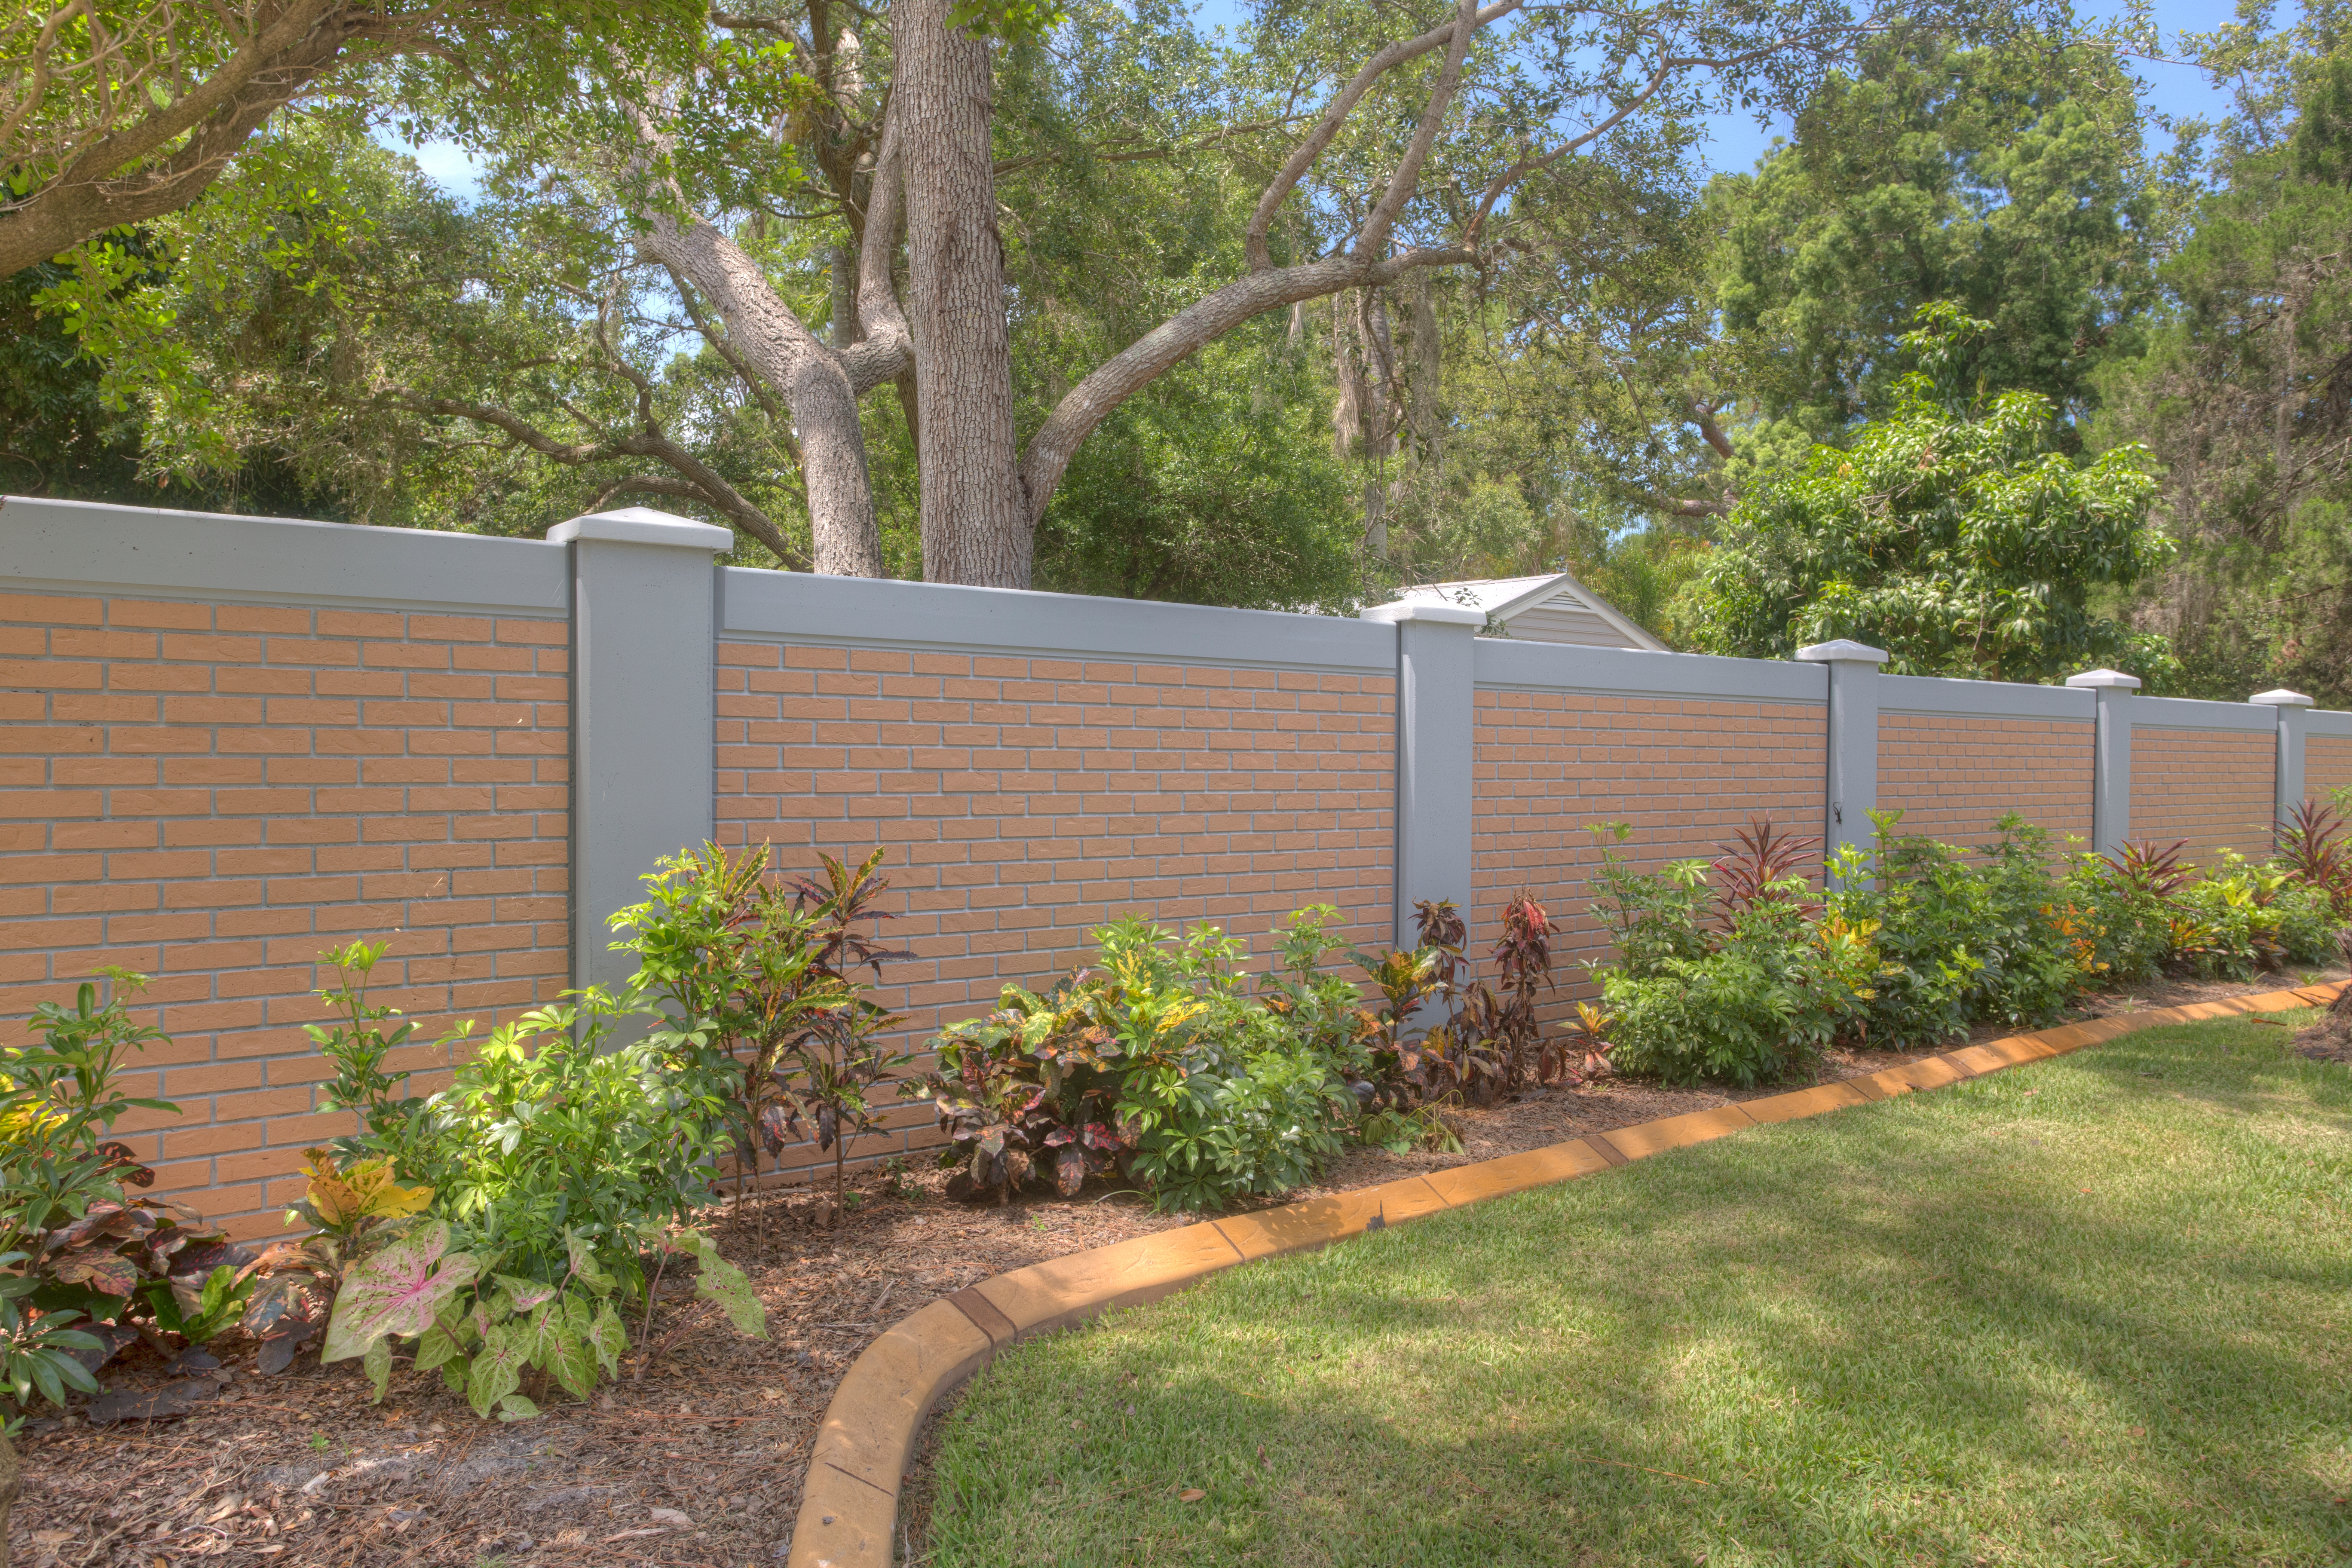 Permacast precast concrete fence completed project - Permawall